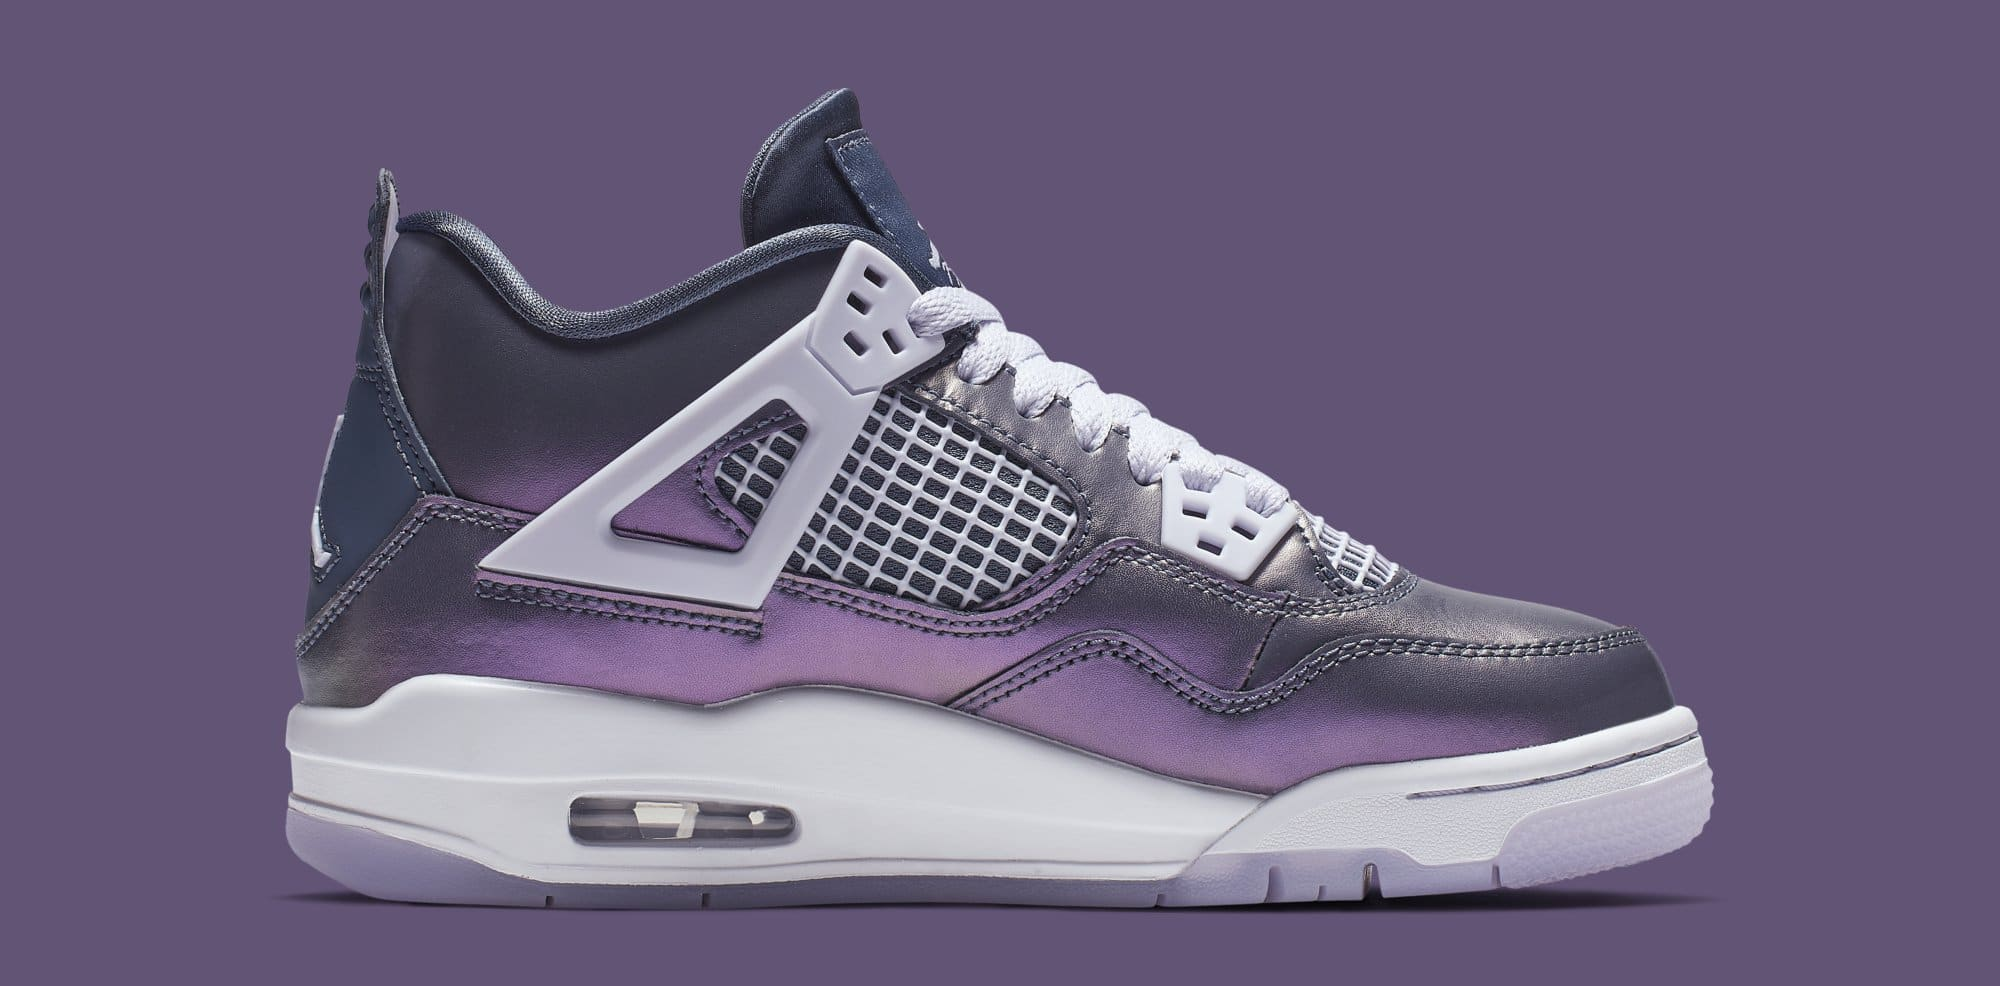 Air Jordan 4 'Monsoon Blue' BQ9043-400 (Medial)